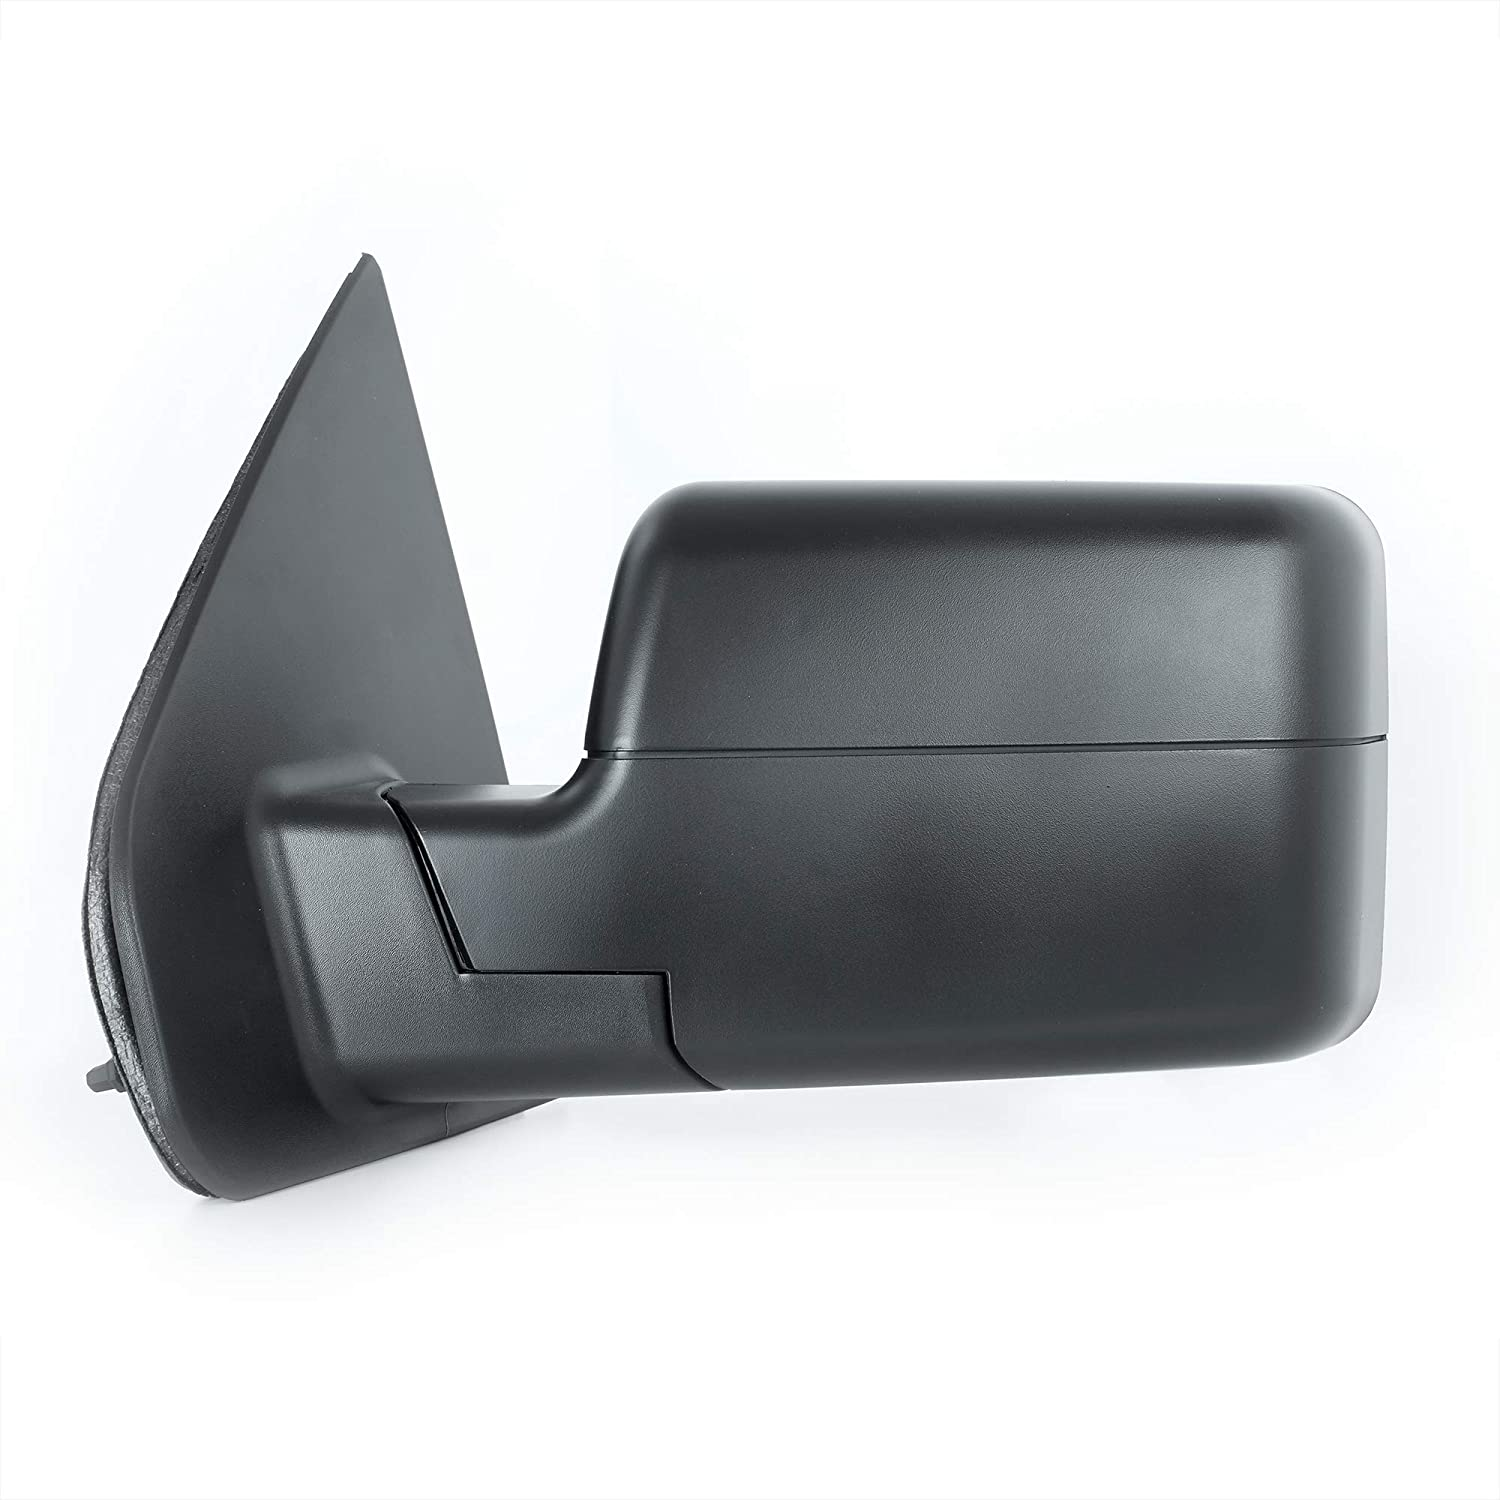 Spieg FO1320233 Side Mirror Compatible 2004-2008 Ford F150 with Max 45% OFF specialty shop